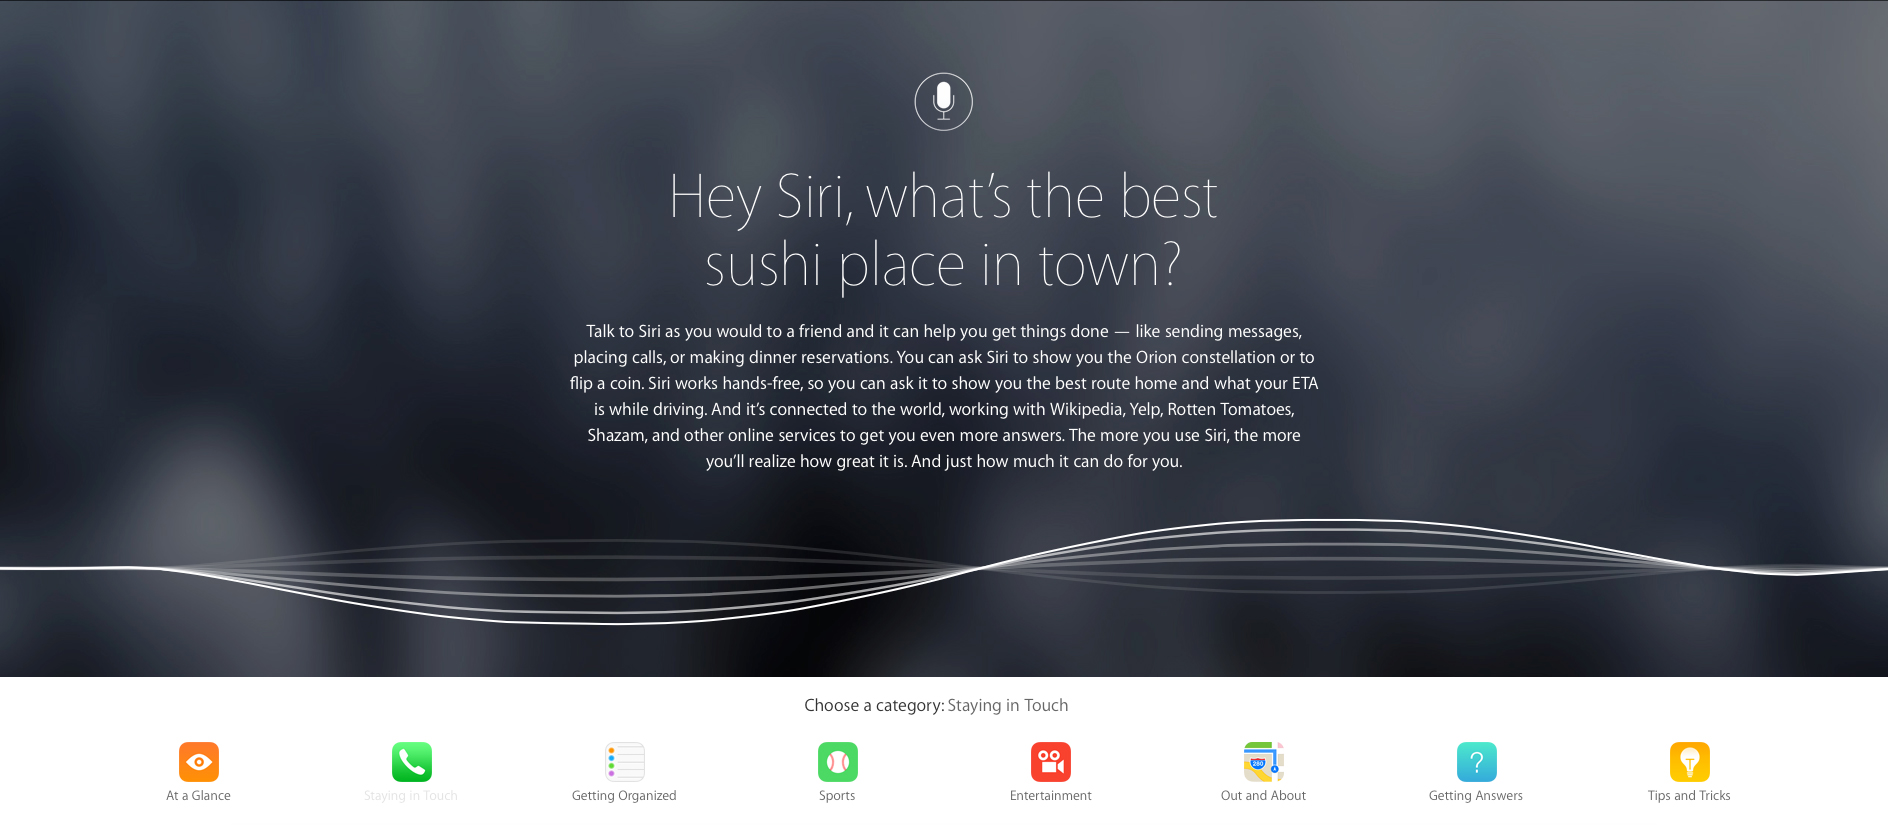 Apple unveils an updated, comprehensive site for its voice-controlled personal assistant Siri